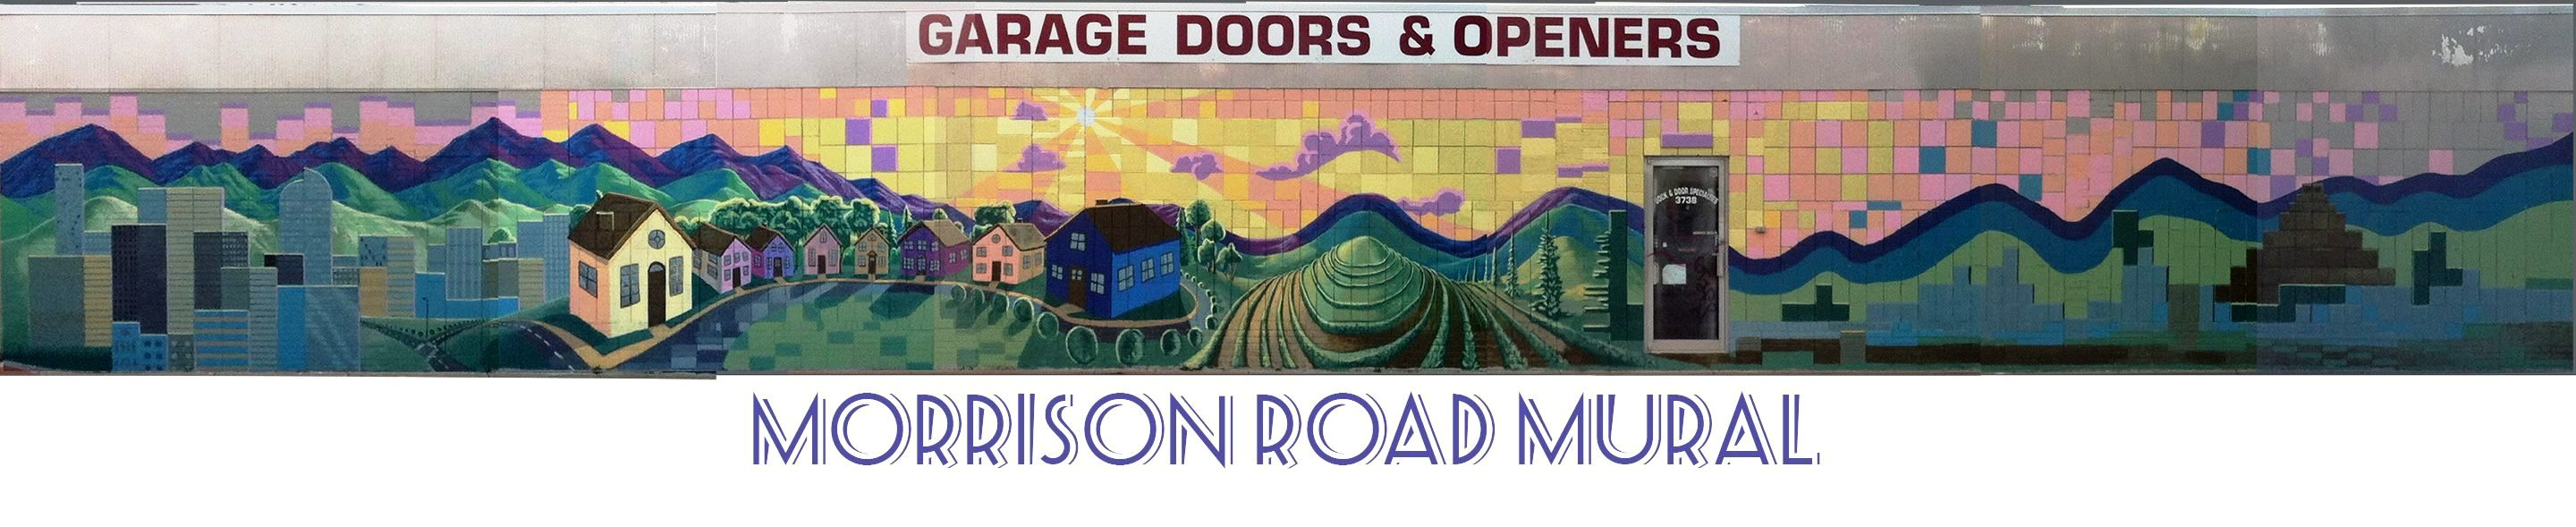 Go to the Morrison Road Mural page